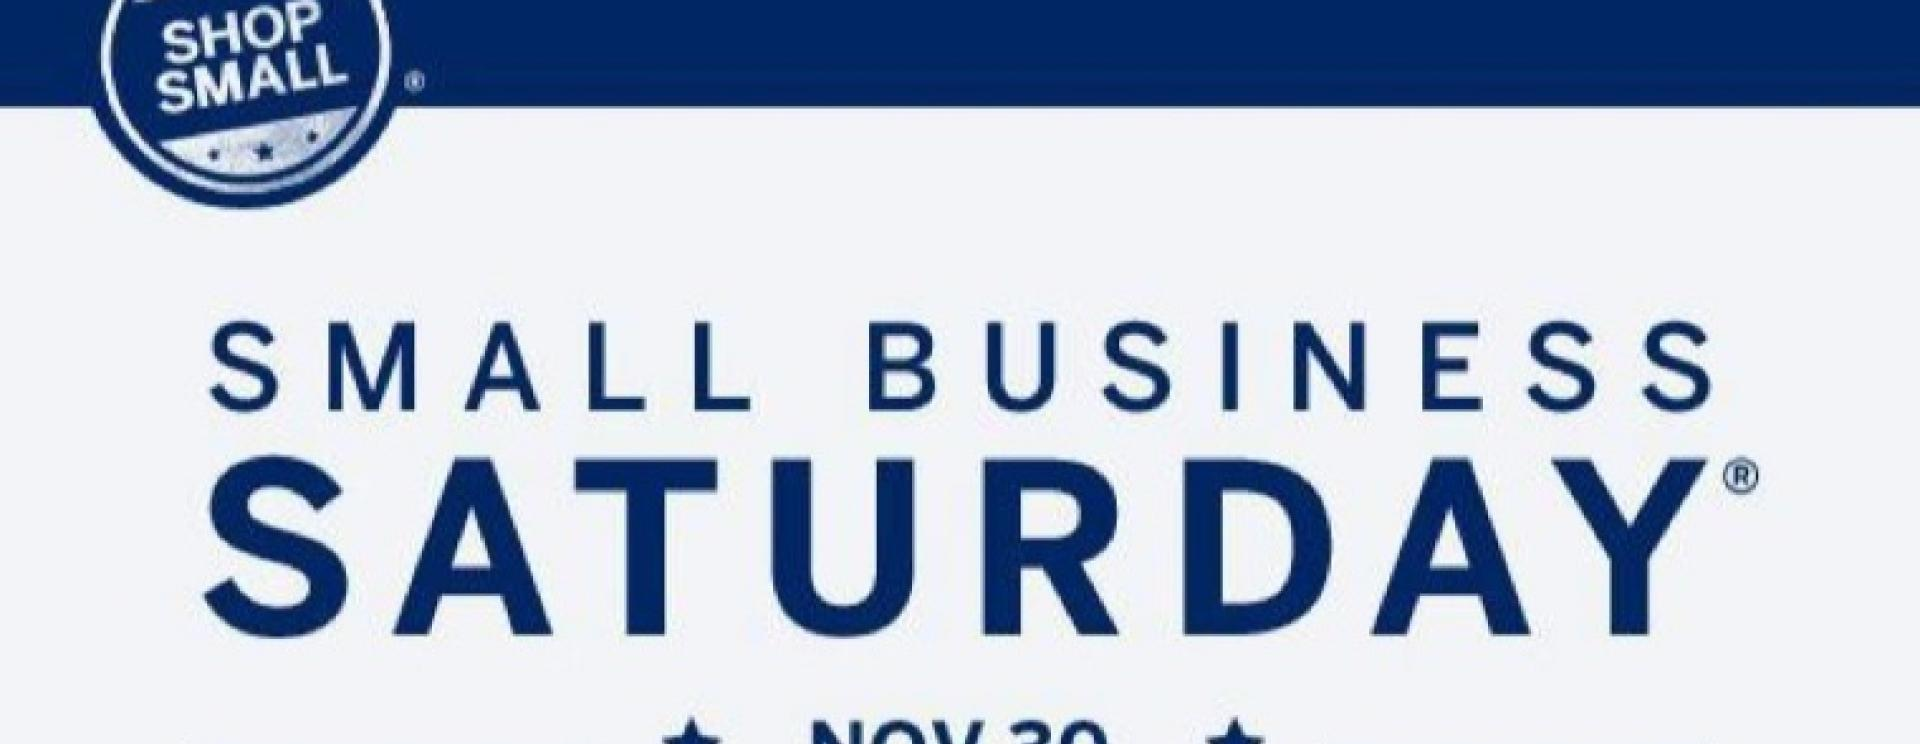 Sturgis Small Business Saturday